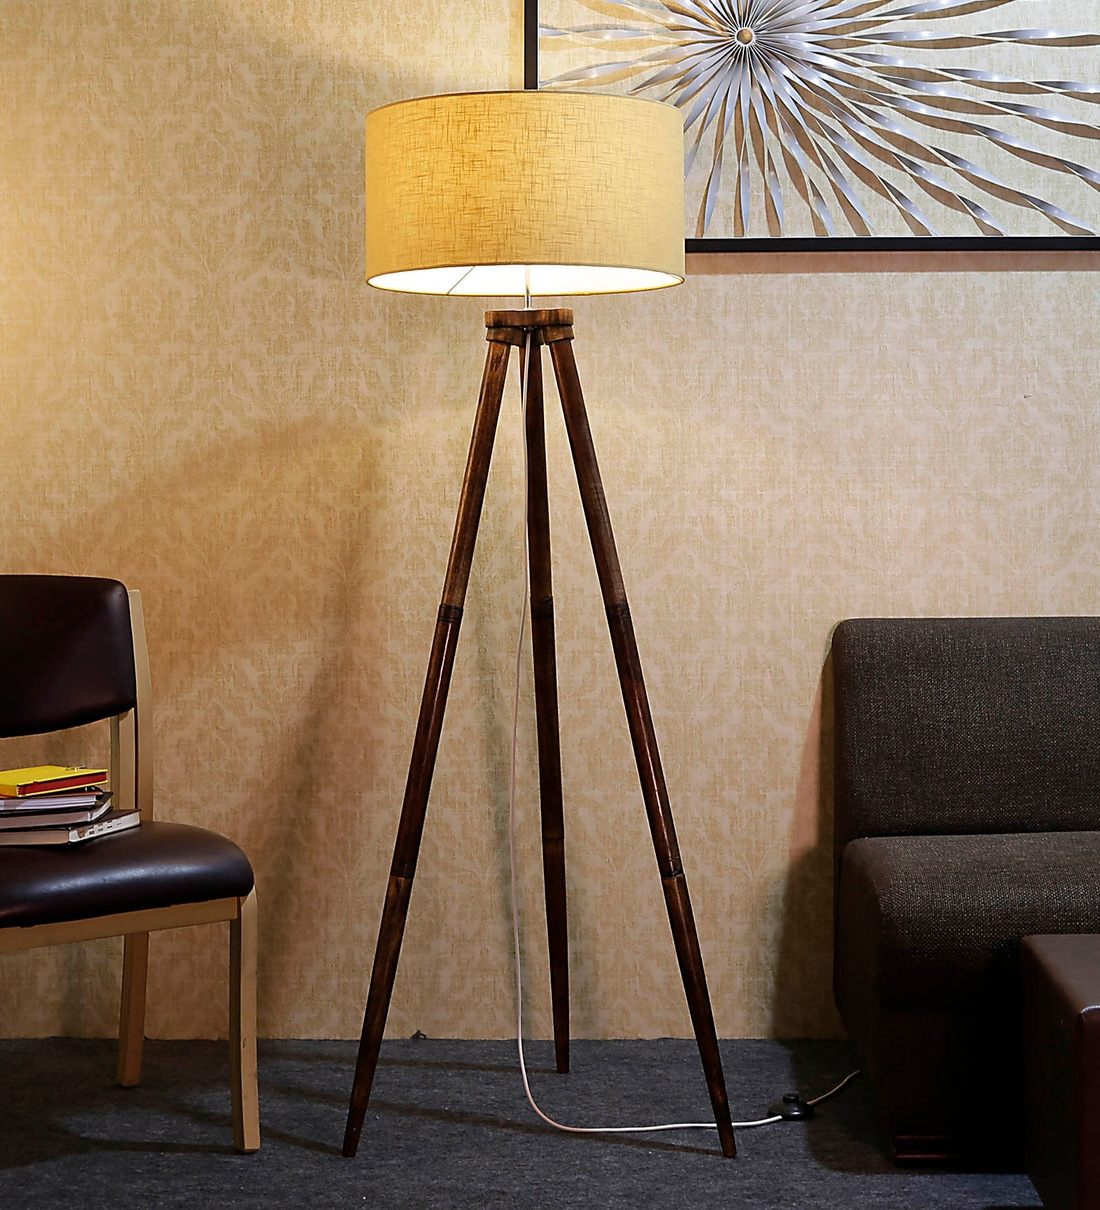 Buy Beige Fabric Shade Tripod Floor Lamp With Brown Base By Craftter Online Modern And Contemporary Floor Lamps Floor Lamps Lamps Lighting Pepperfry Product